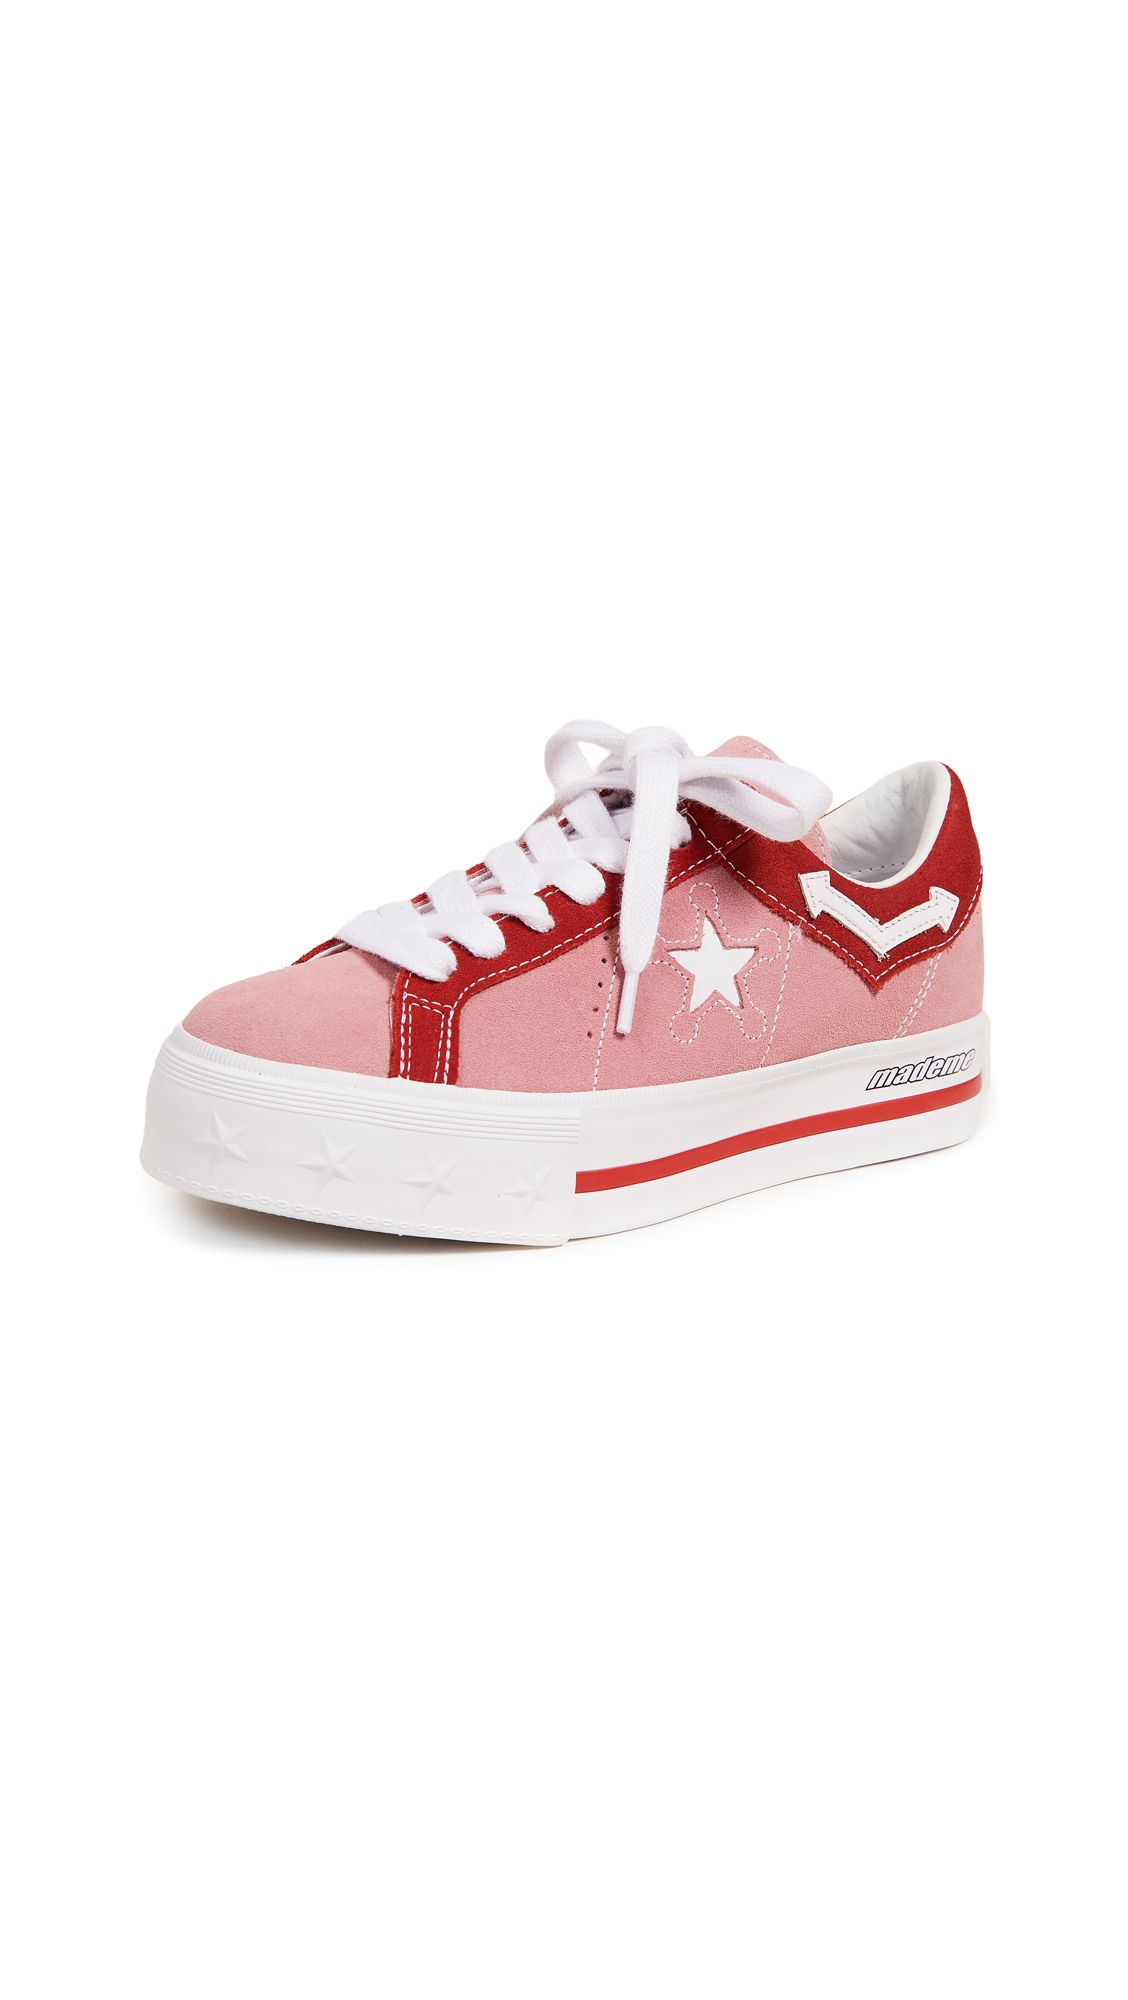 Converse x MadeMe One Star Lift Platform Sneakers - Pink